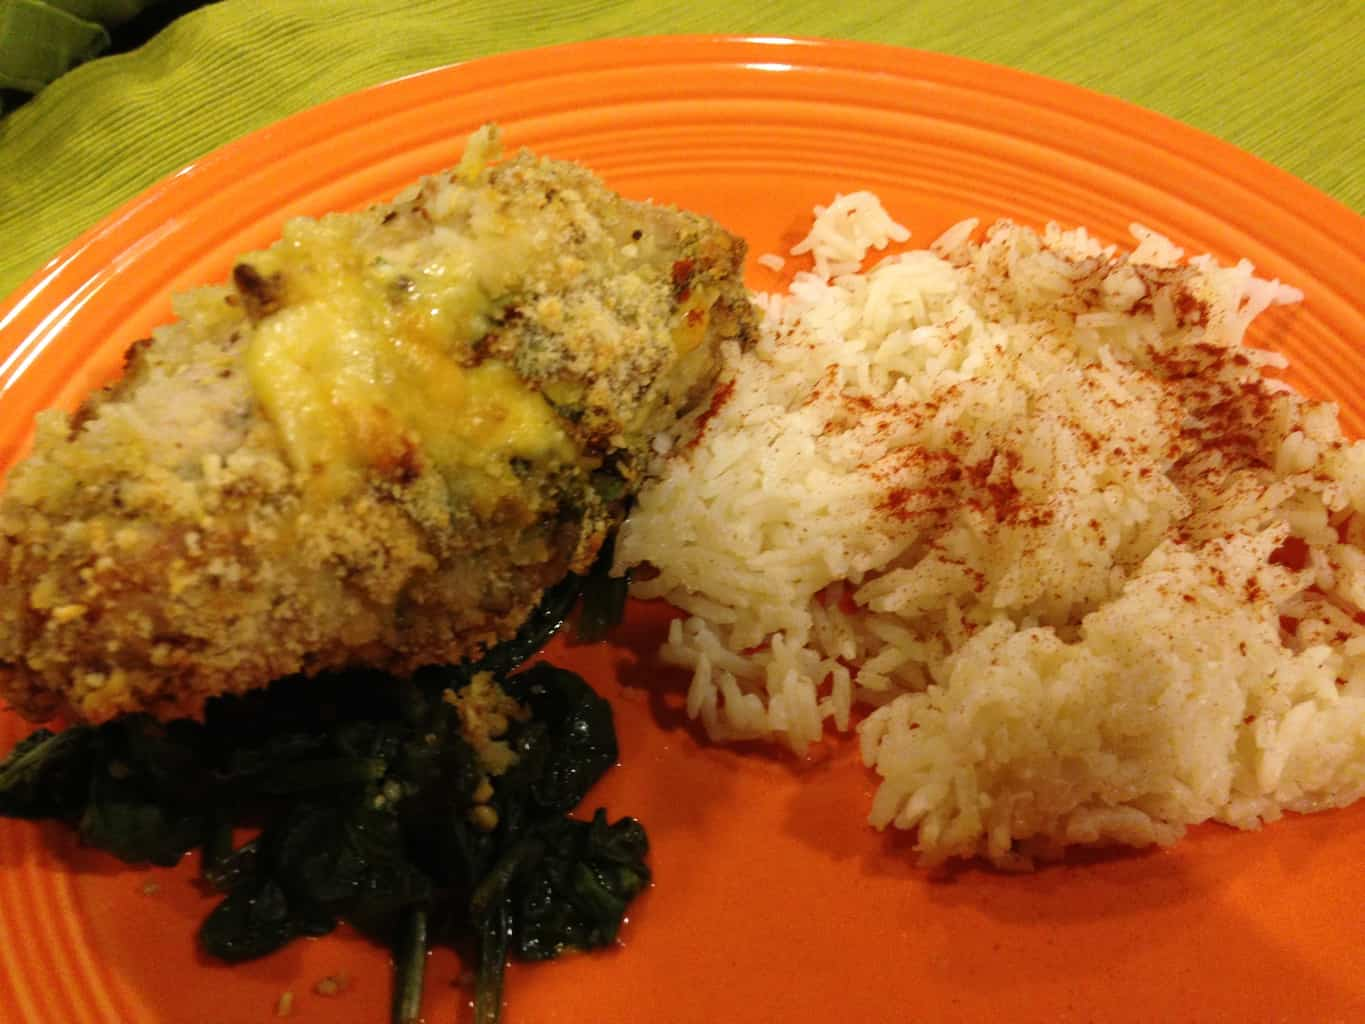 Gluten-Free Stuffed Pork Chops with Spinach and Gouda